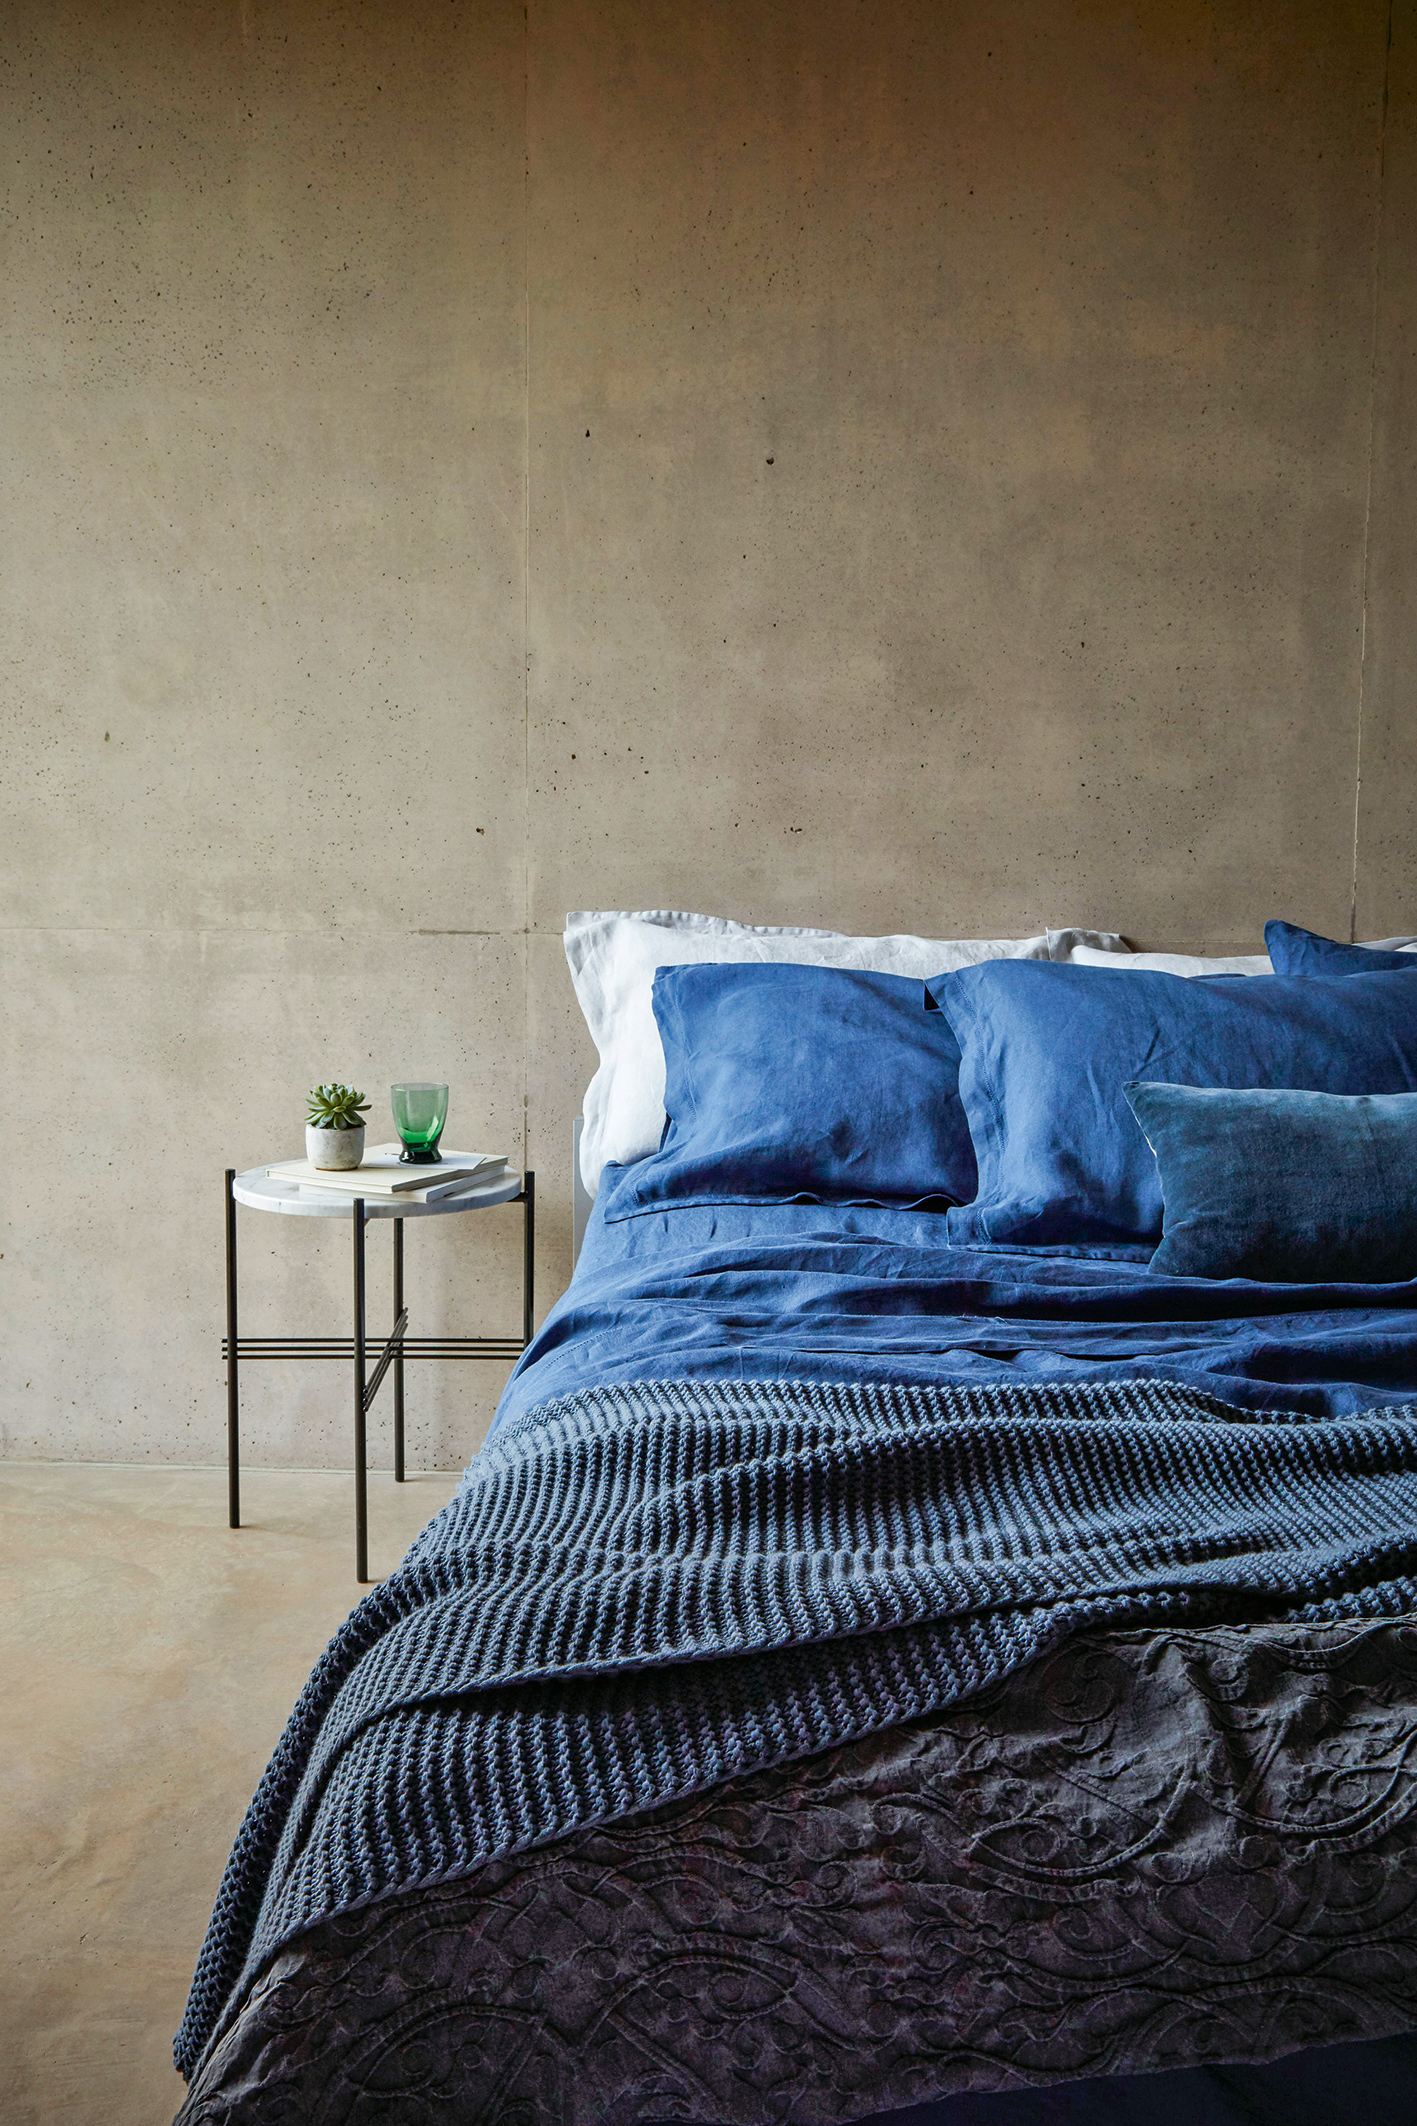 Trending stonewashed 100 linen bedding oslo throw 65 and vintage washed belgian linen denim double duvet cover 140 both from christy publicscrutiny Image collections